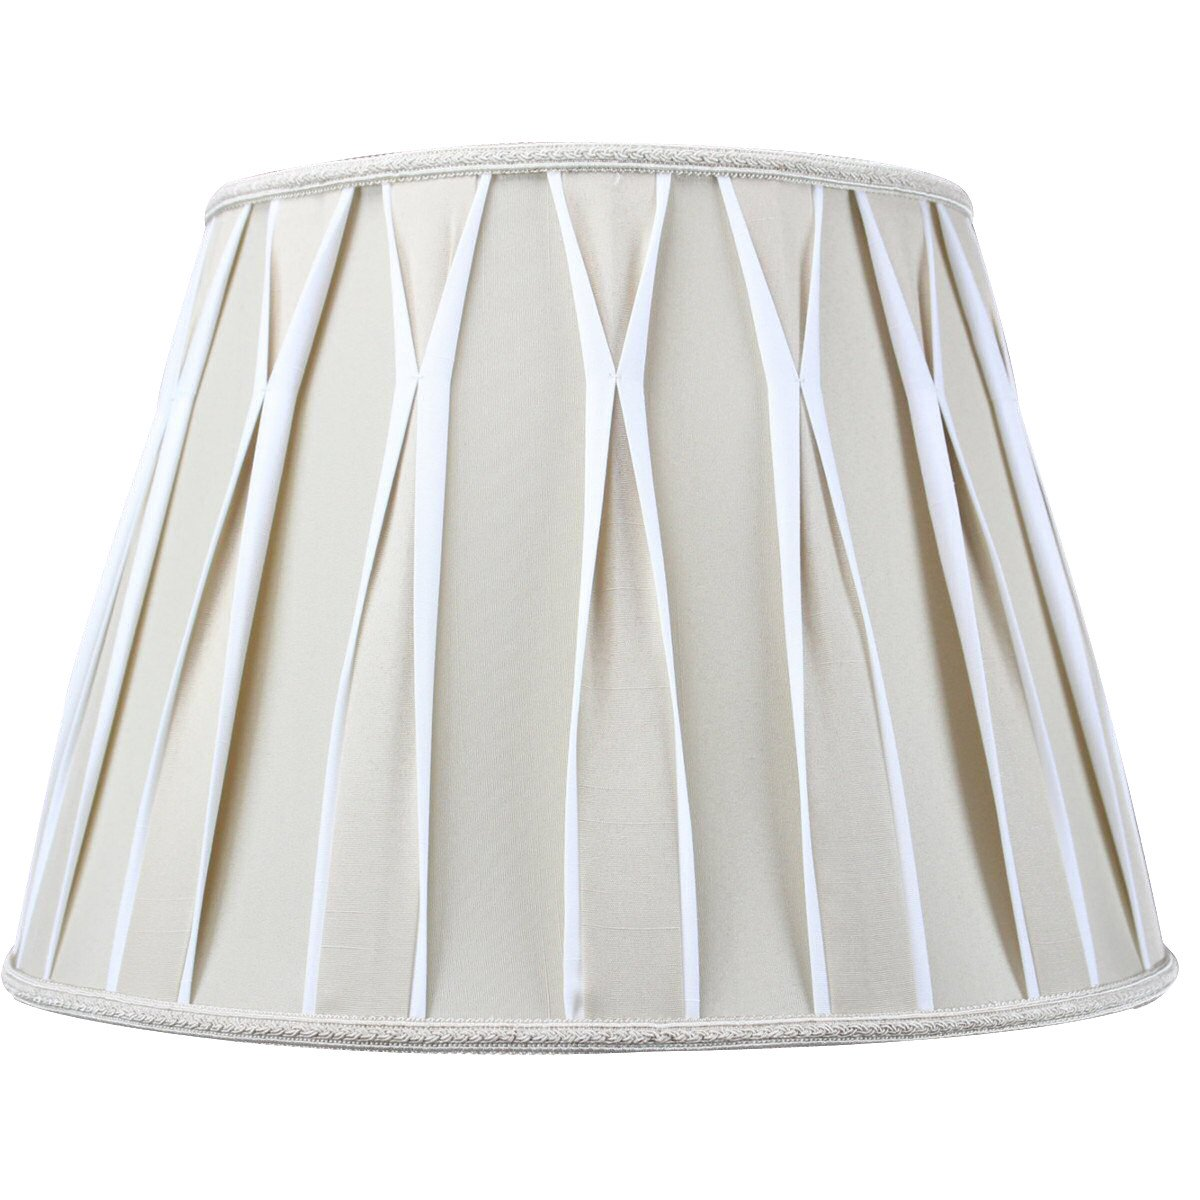 HomeConcept 101611EPBW Pinched Pleat Shantung Lampshade with Brass Spider Fitter by Home Concept, 10'' x 16'' x 11'', White/Beige